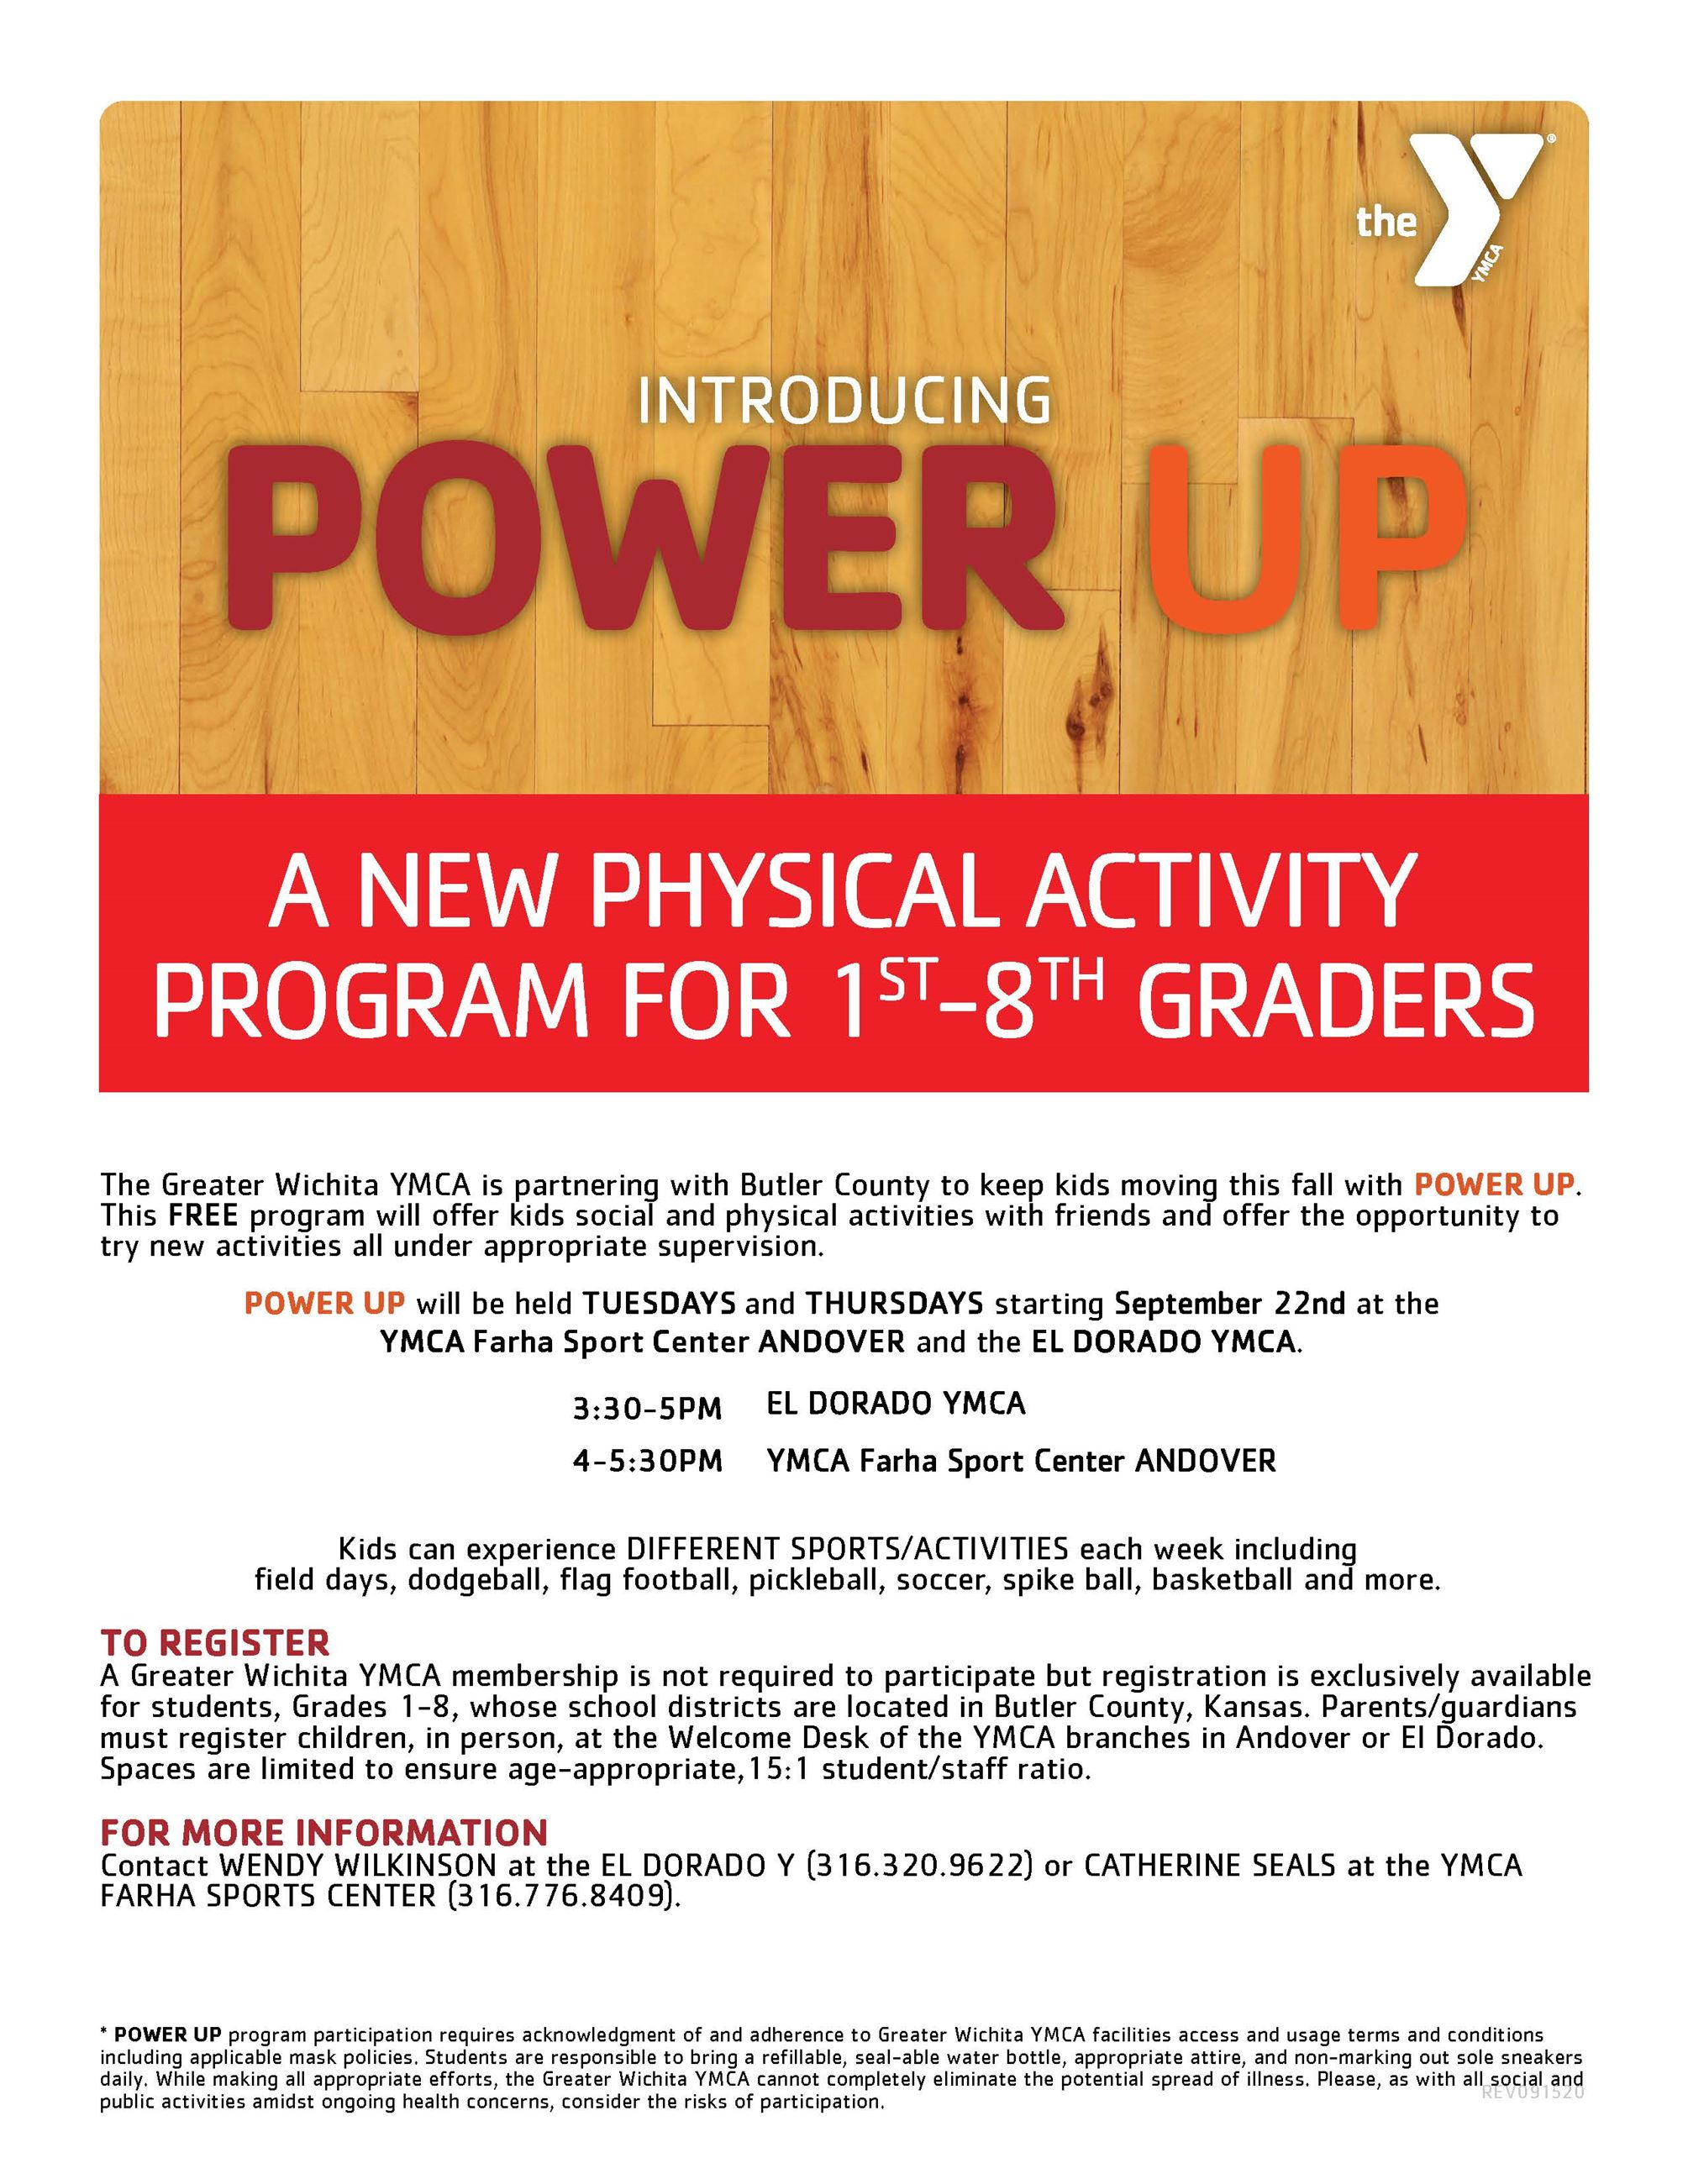 YMCA PowerUP Flyer